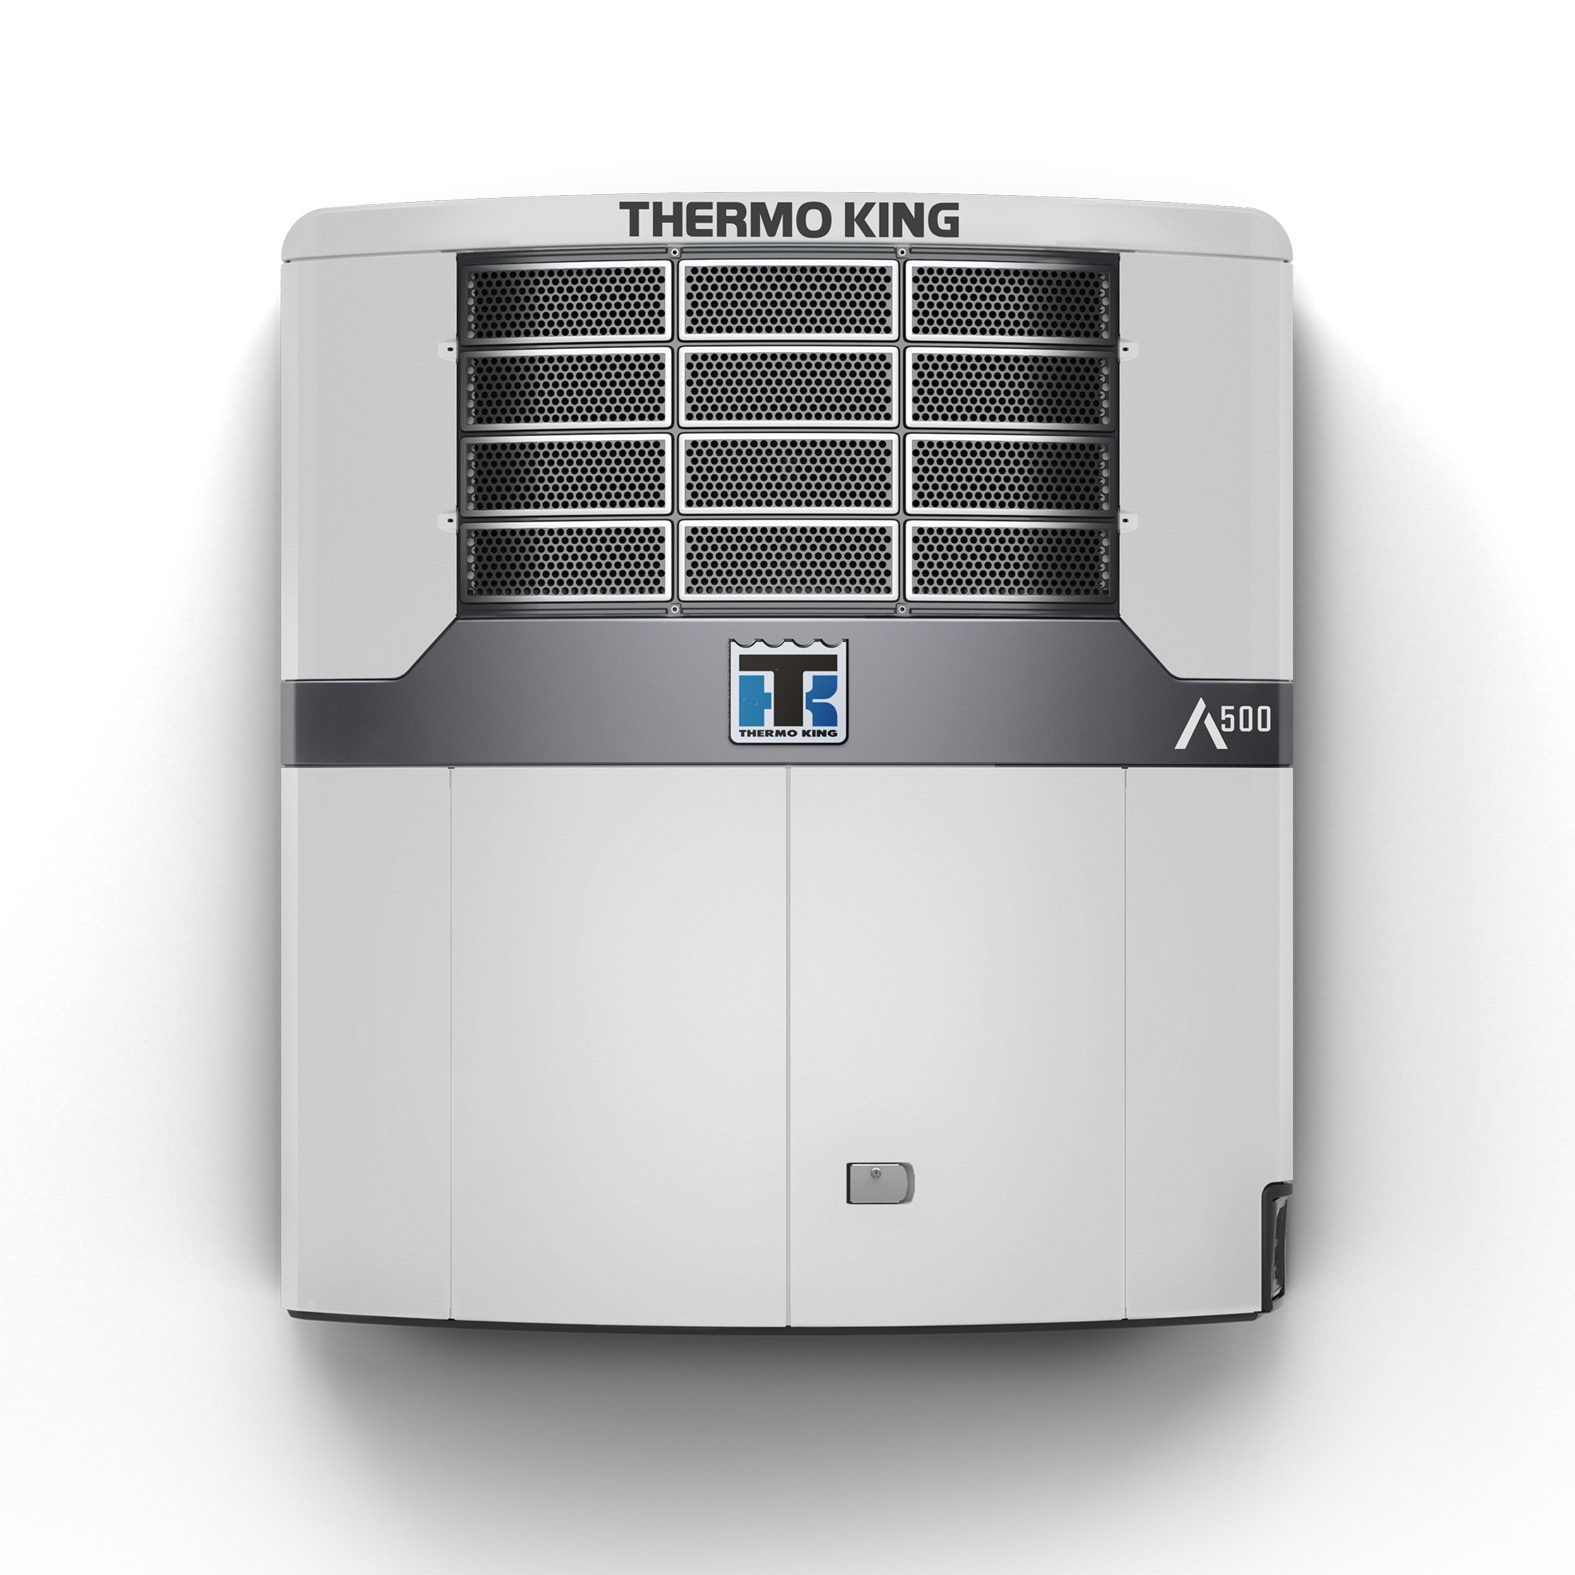 thermo-king-advancer_a-500.jpg